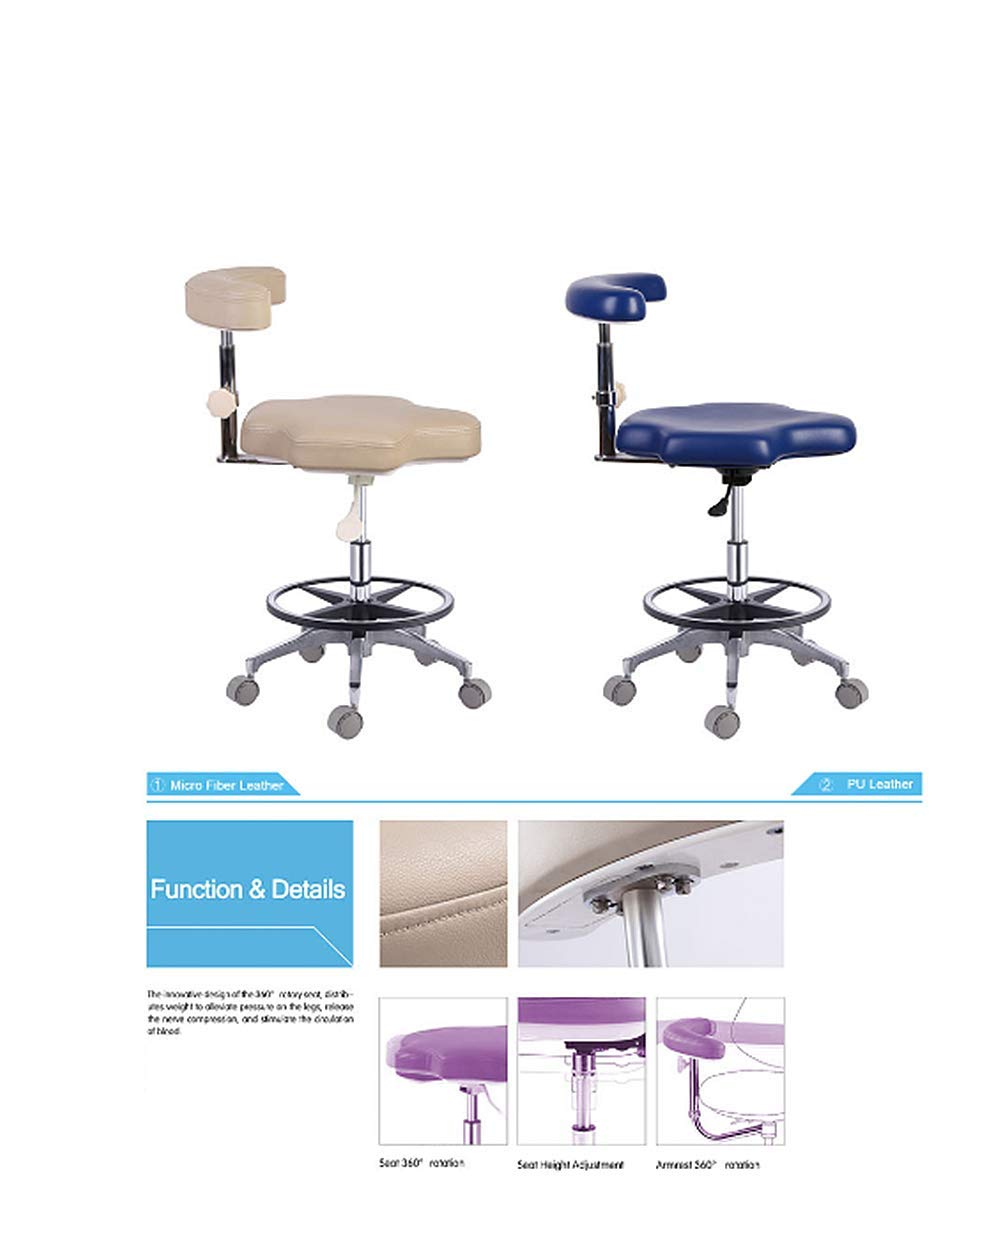 SoHome Dental Stool Assistant Chair Height Adjustable Hospital Nurse Stool with Foot-Ring Base PU Leather by SoHome